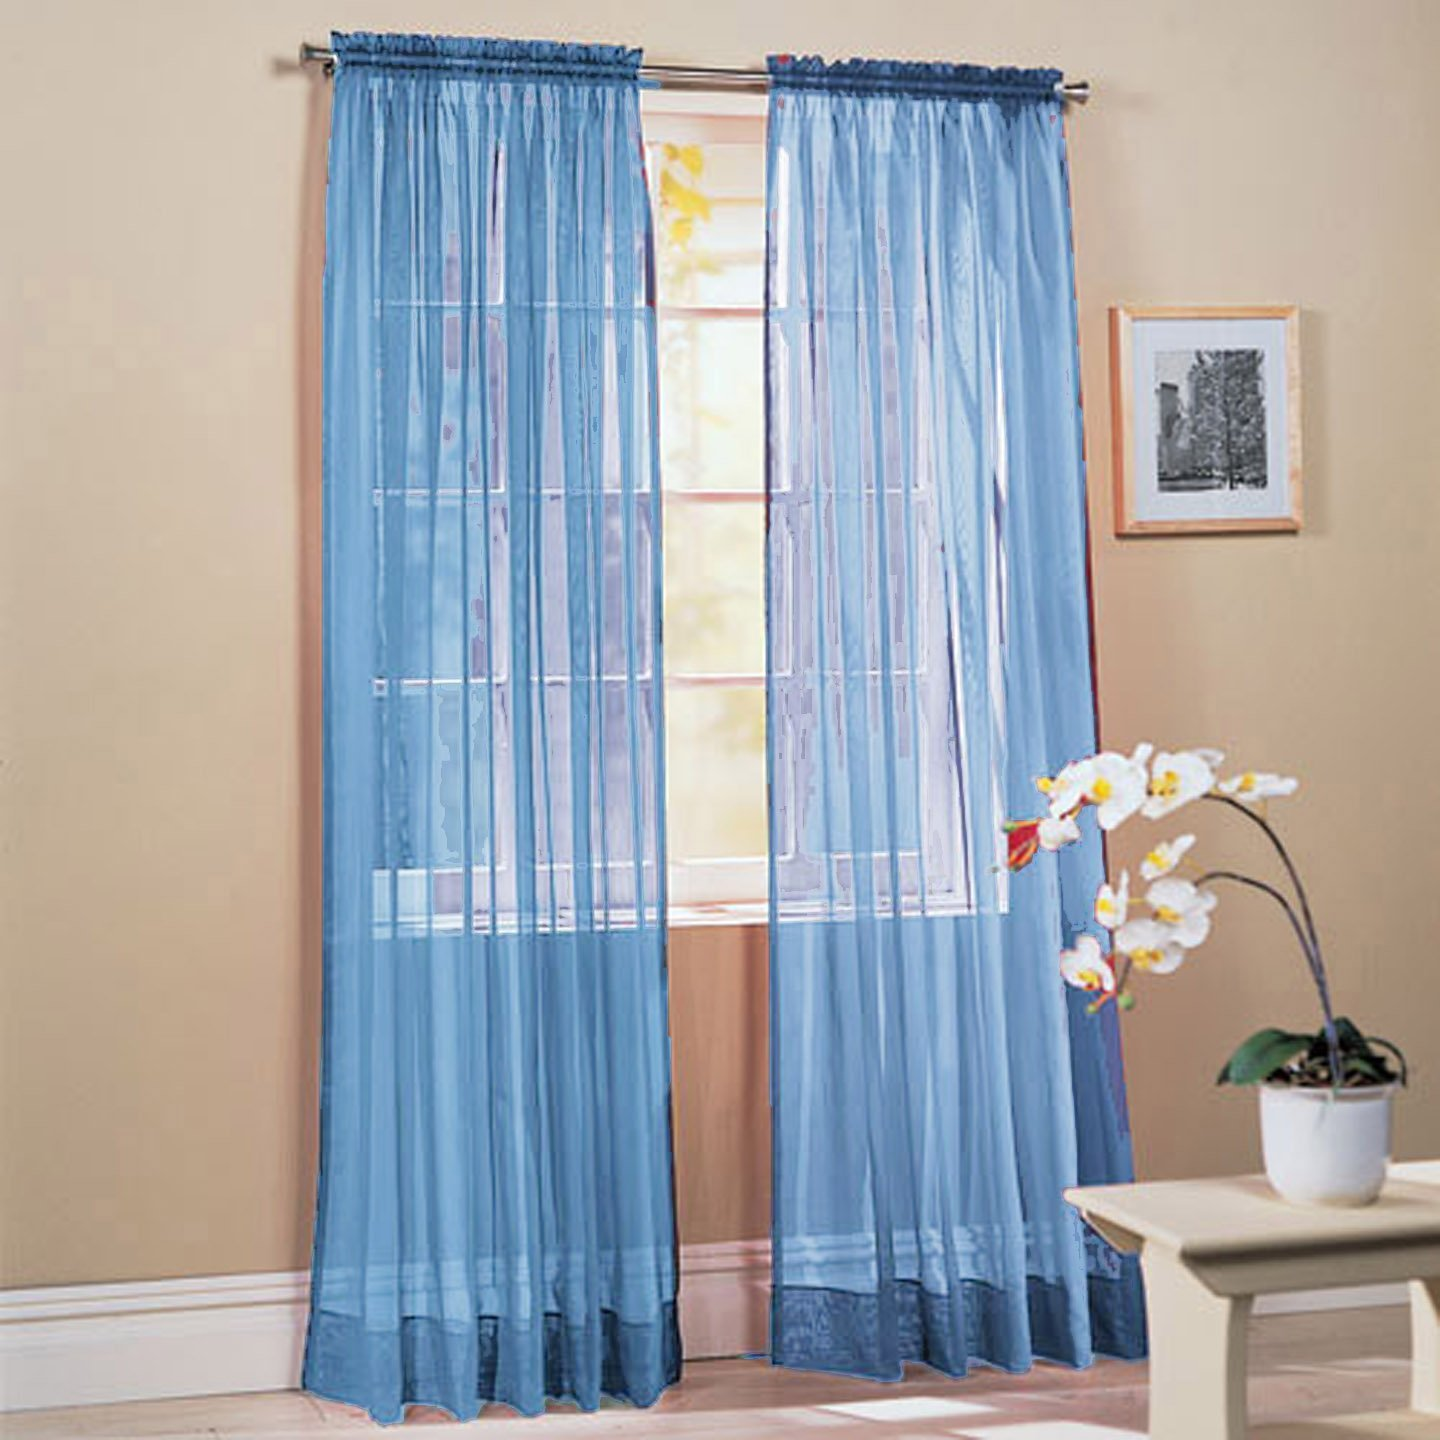 Amazon 2 Piece Solid Sky Blue Sheer Window Curtains Drape Panels Treatment 58w X 84l Home Kitchen